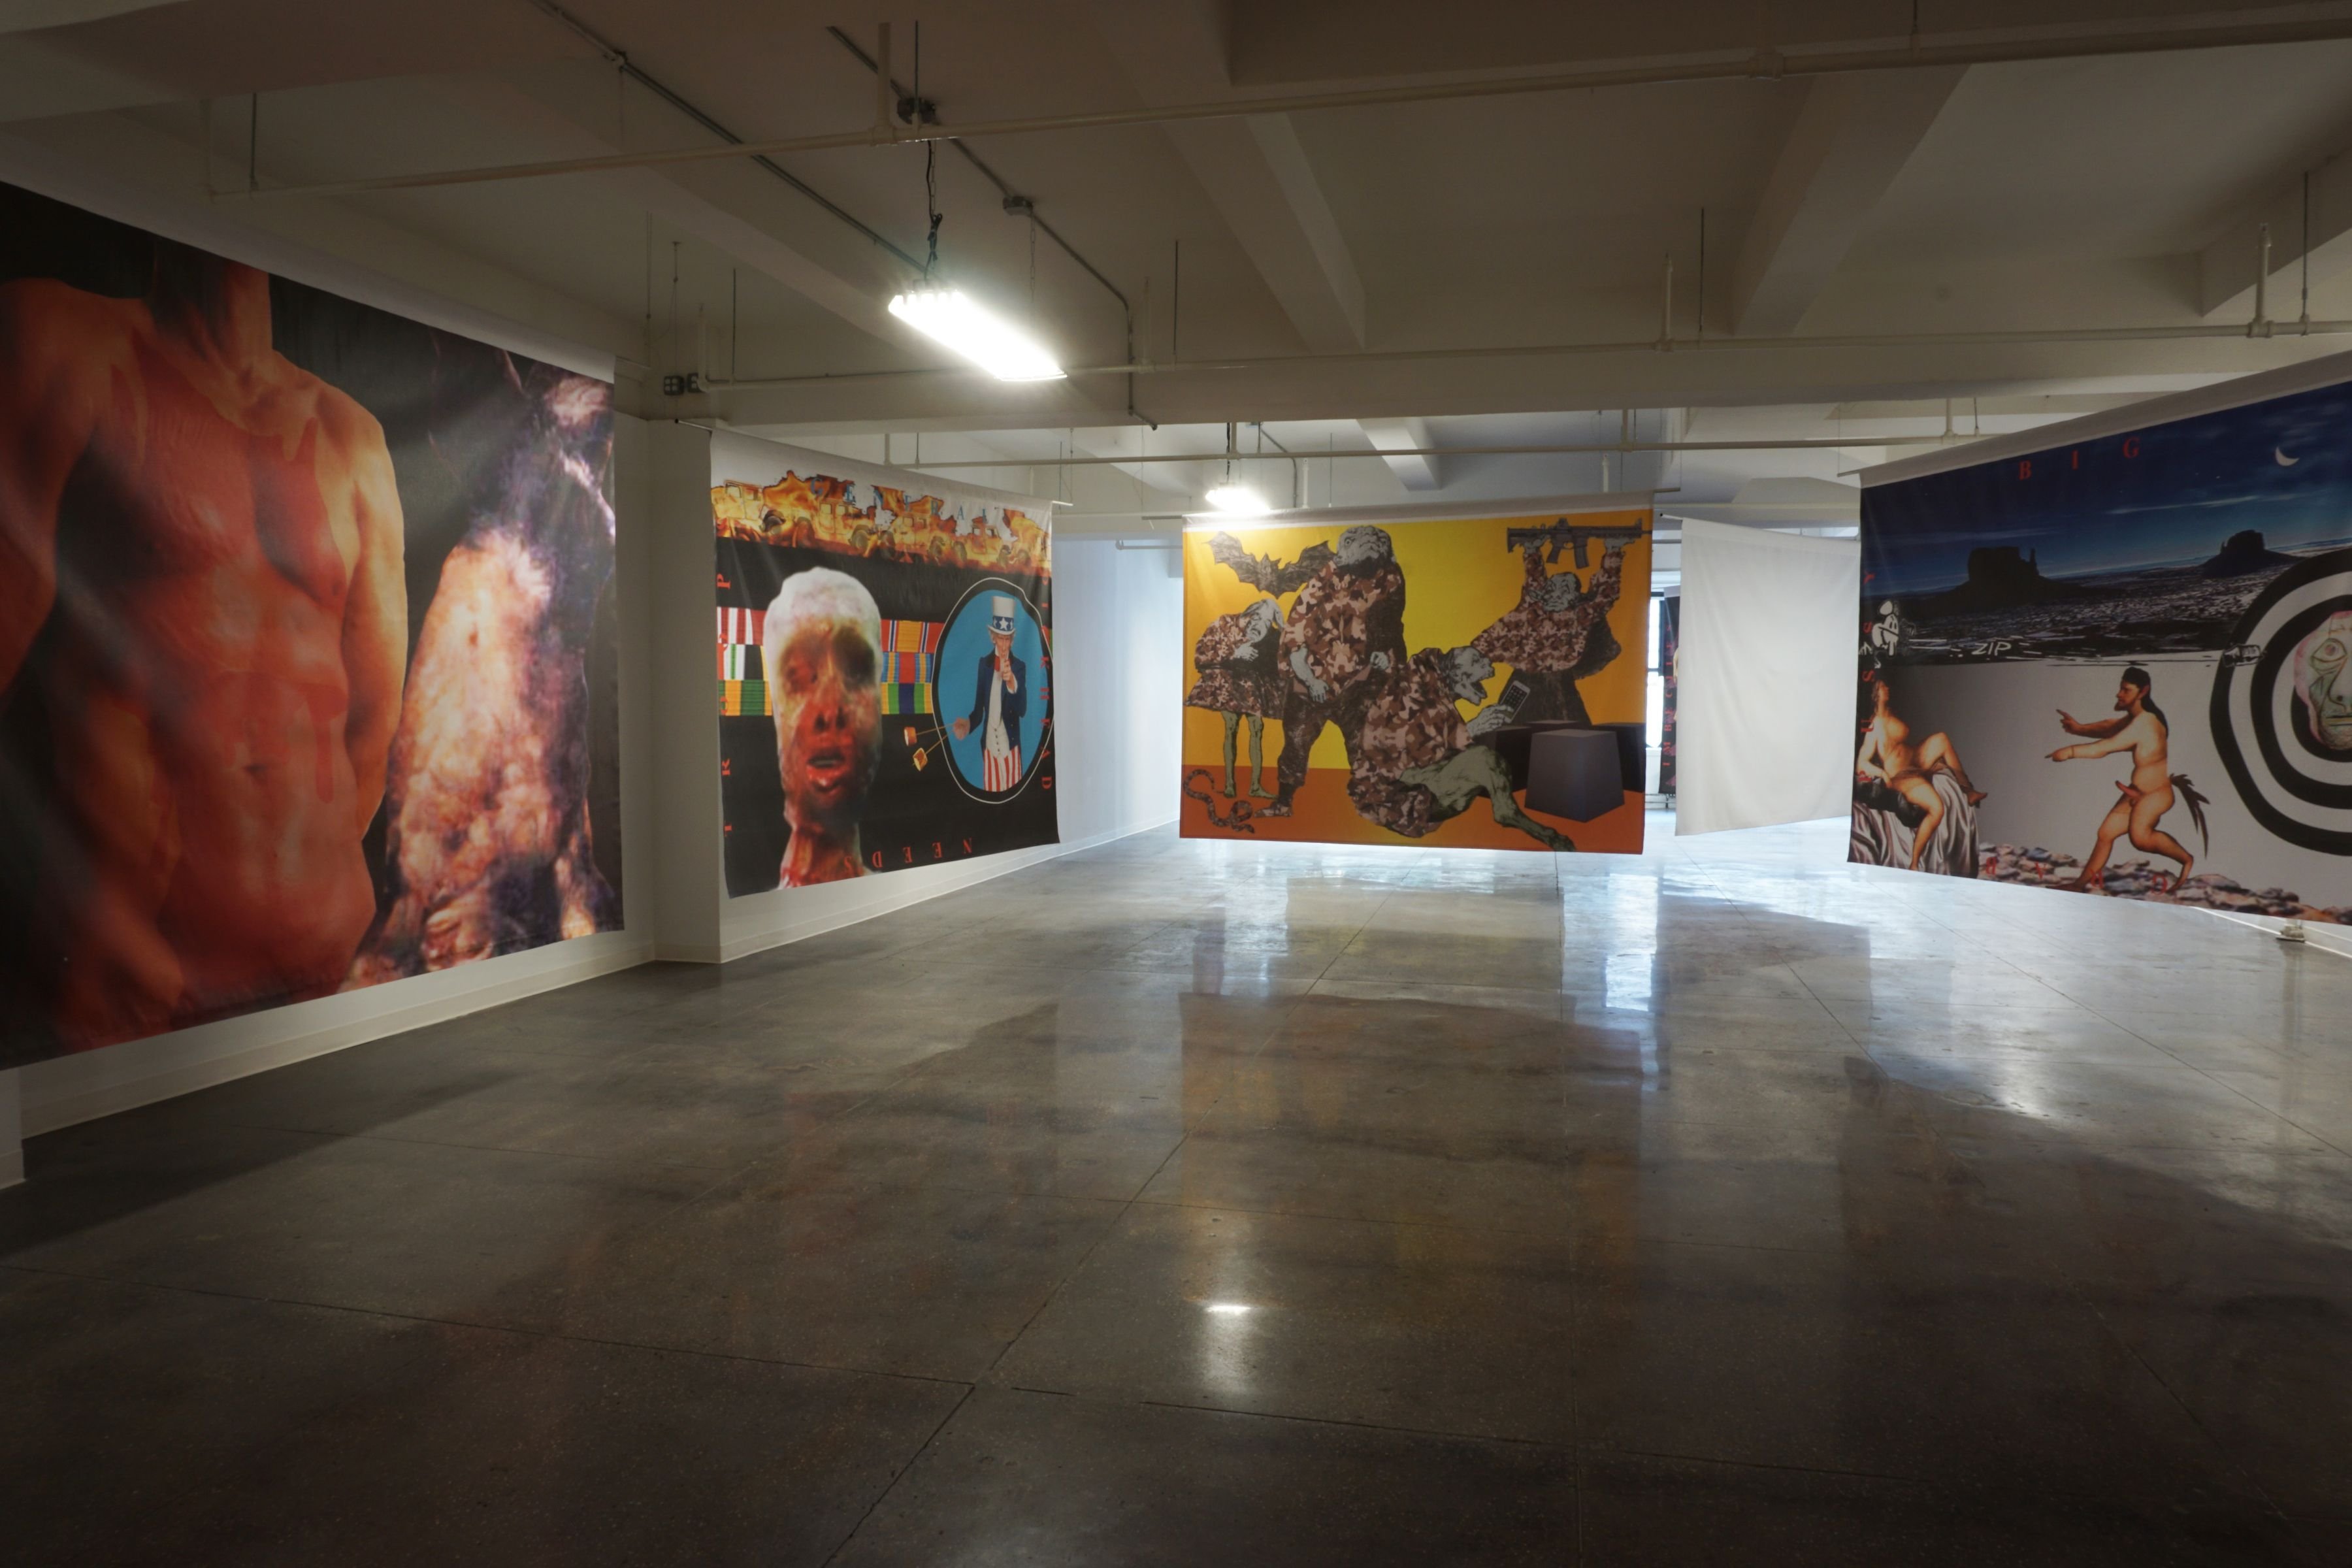 Installation view, Robert Morris: Banners and Curses, 24 WEST 40